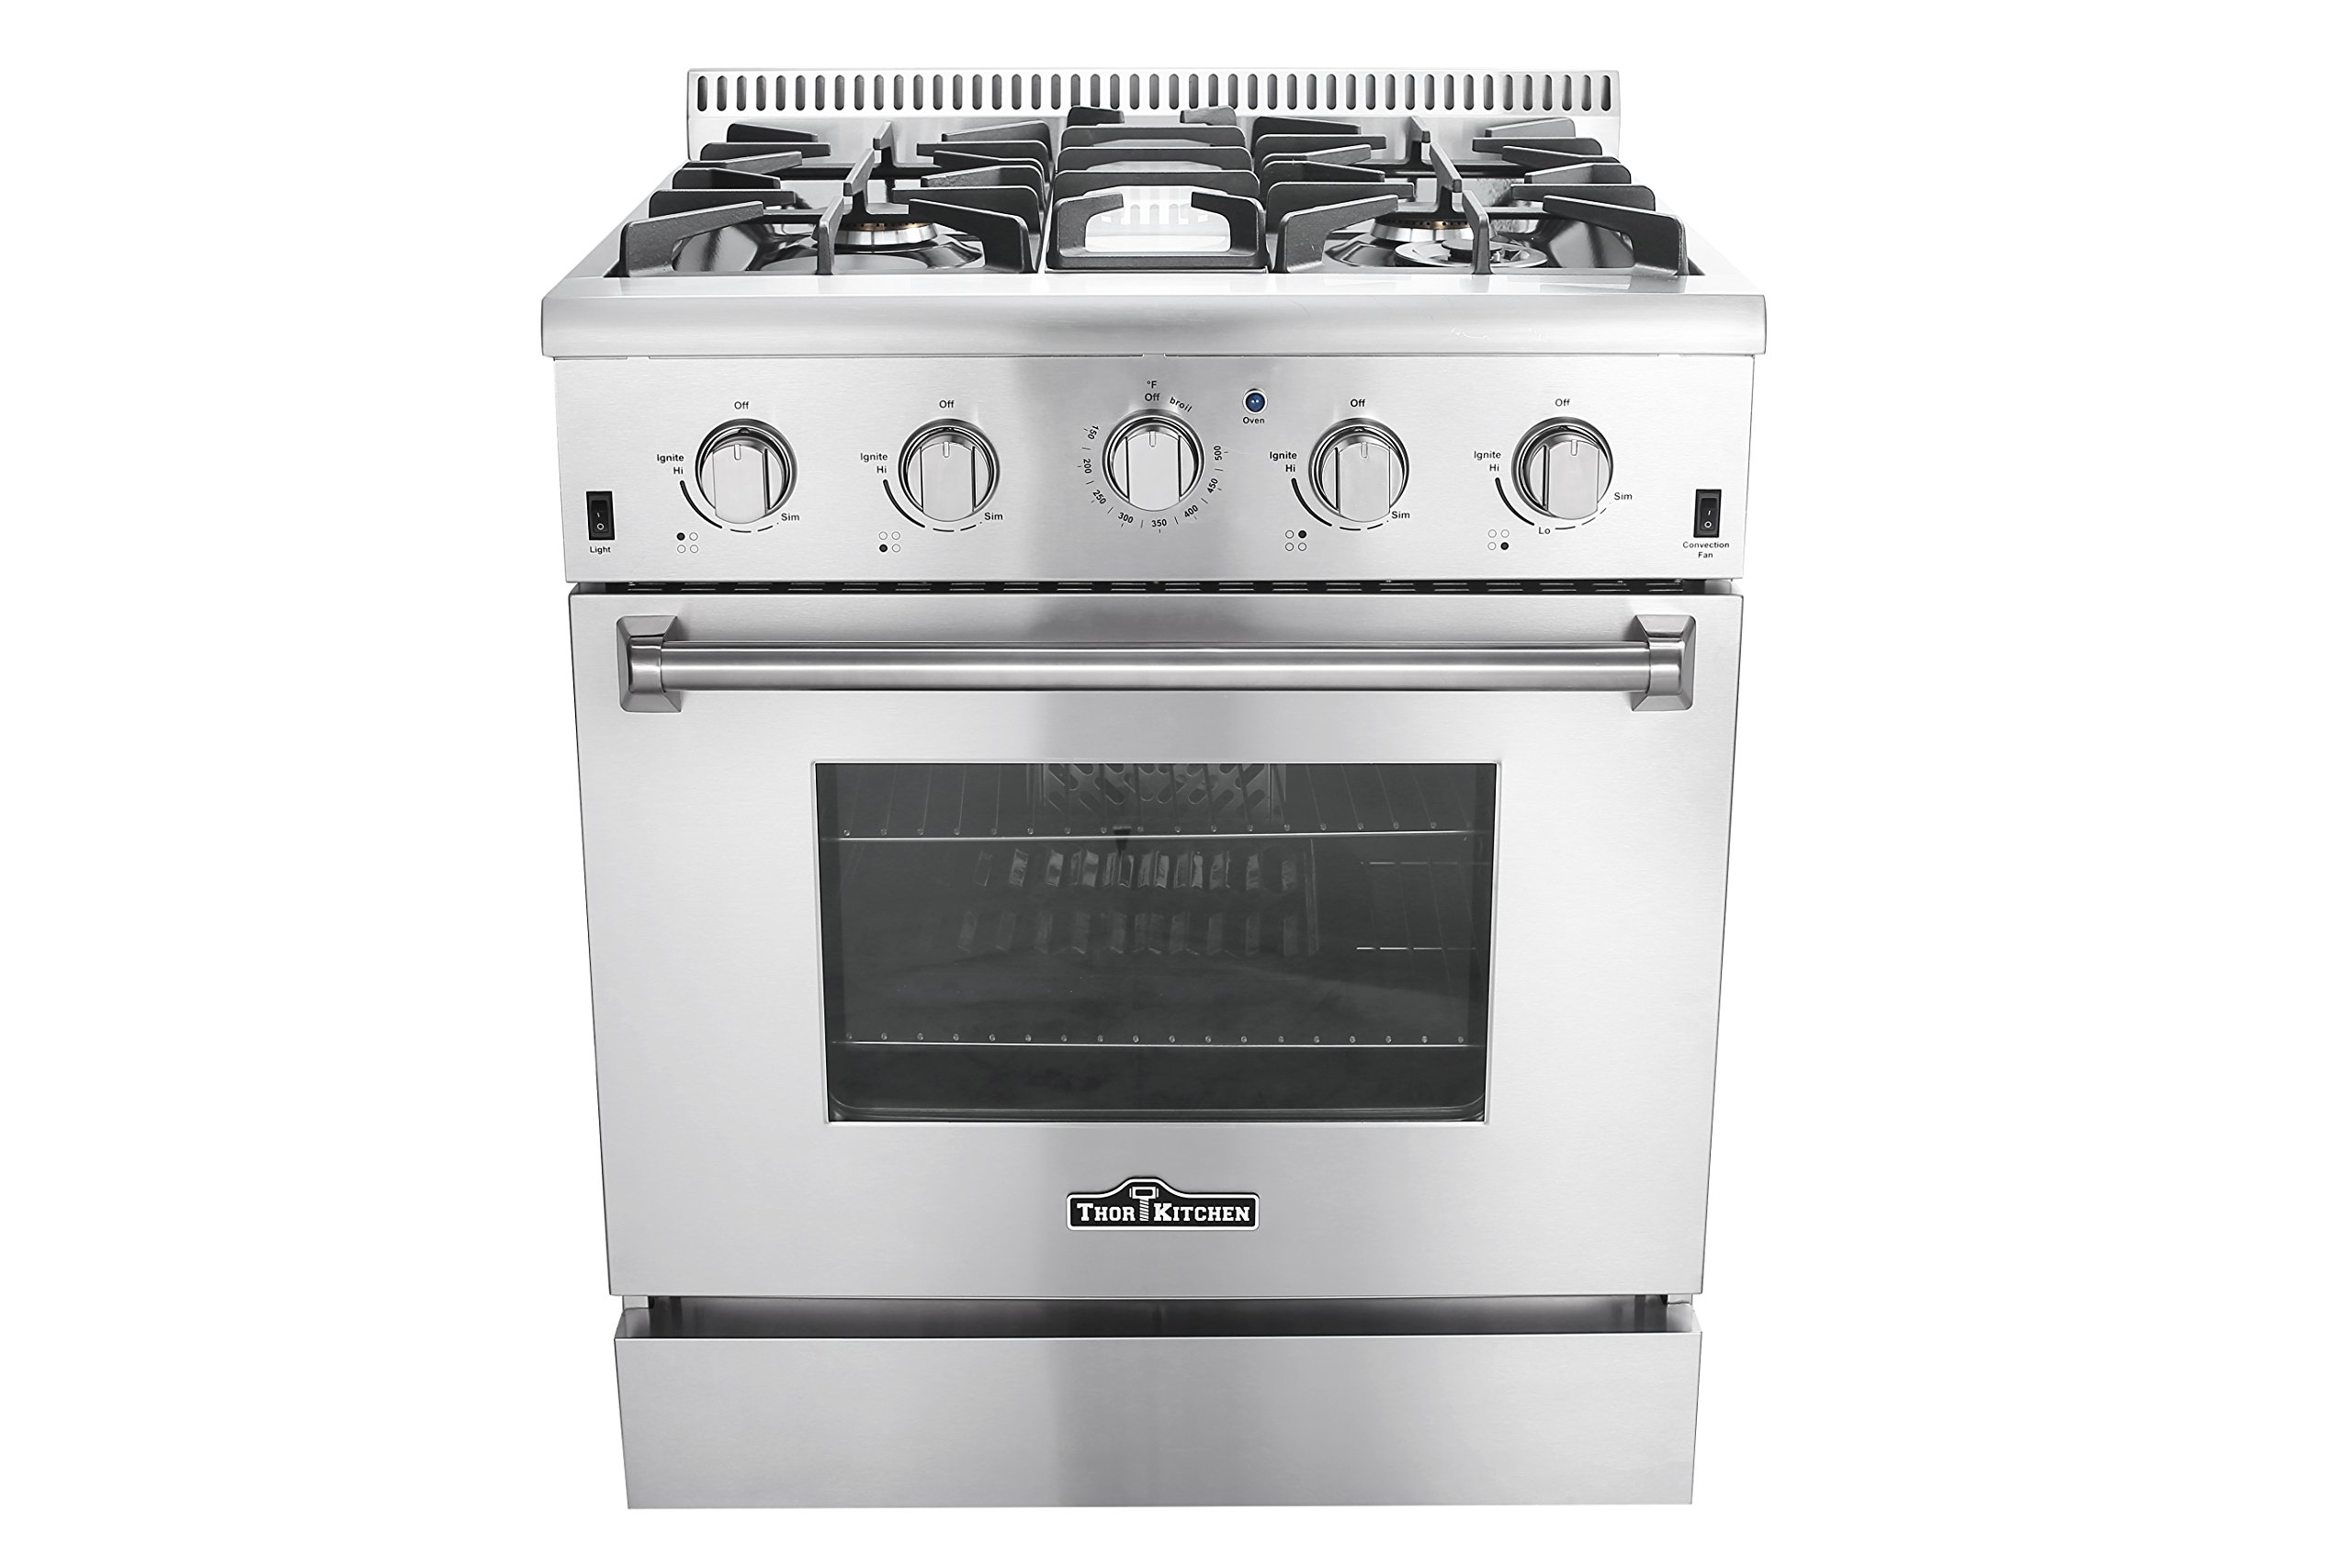 Thor Kitchen HRG3080U 30'' Freestanding Professional Style Gas Range with 4.2 cu. ft. Oven, 4 Burners, Convection Fan, Cast Iron Grates, and Blue Porcelain Oven Interior, in Stainless Steel by Thor Kitchen